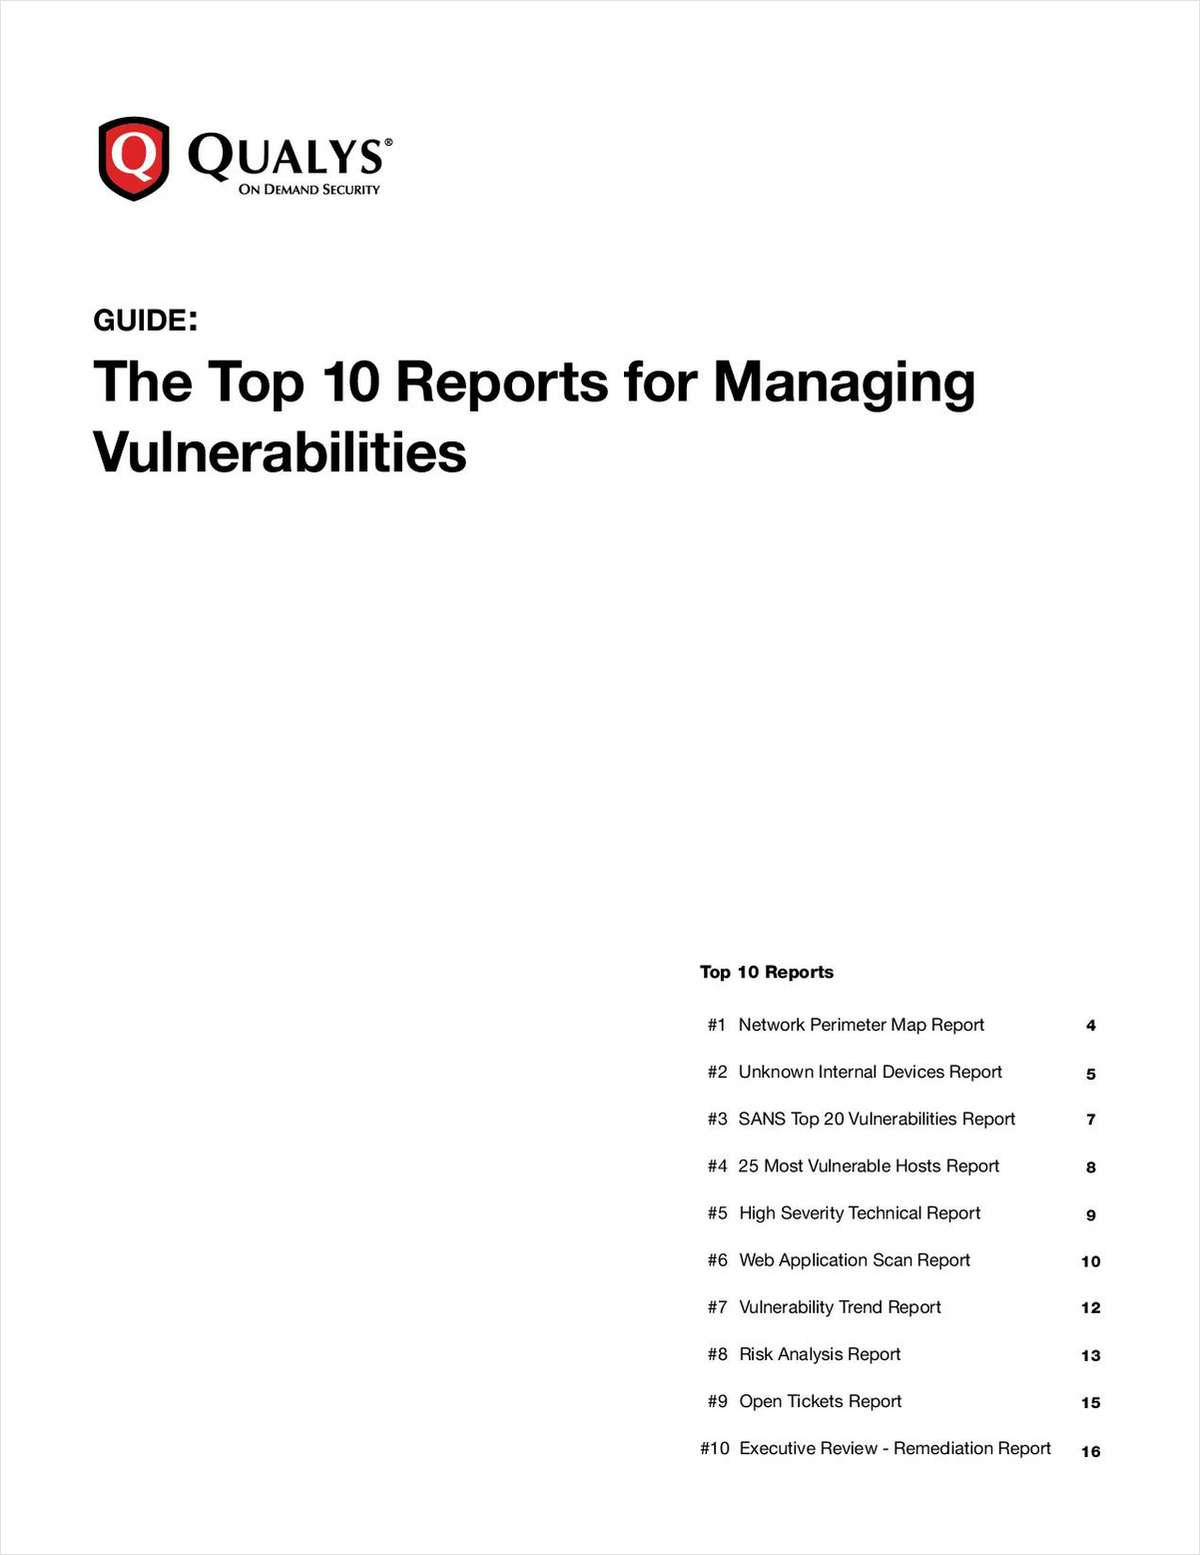 The Top 10 Reports for Managing Vulnerabilities